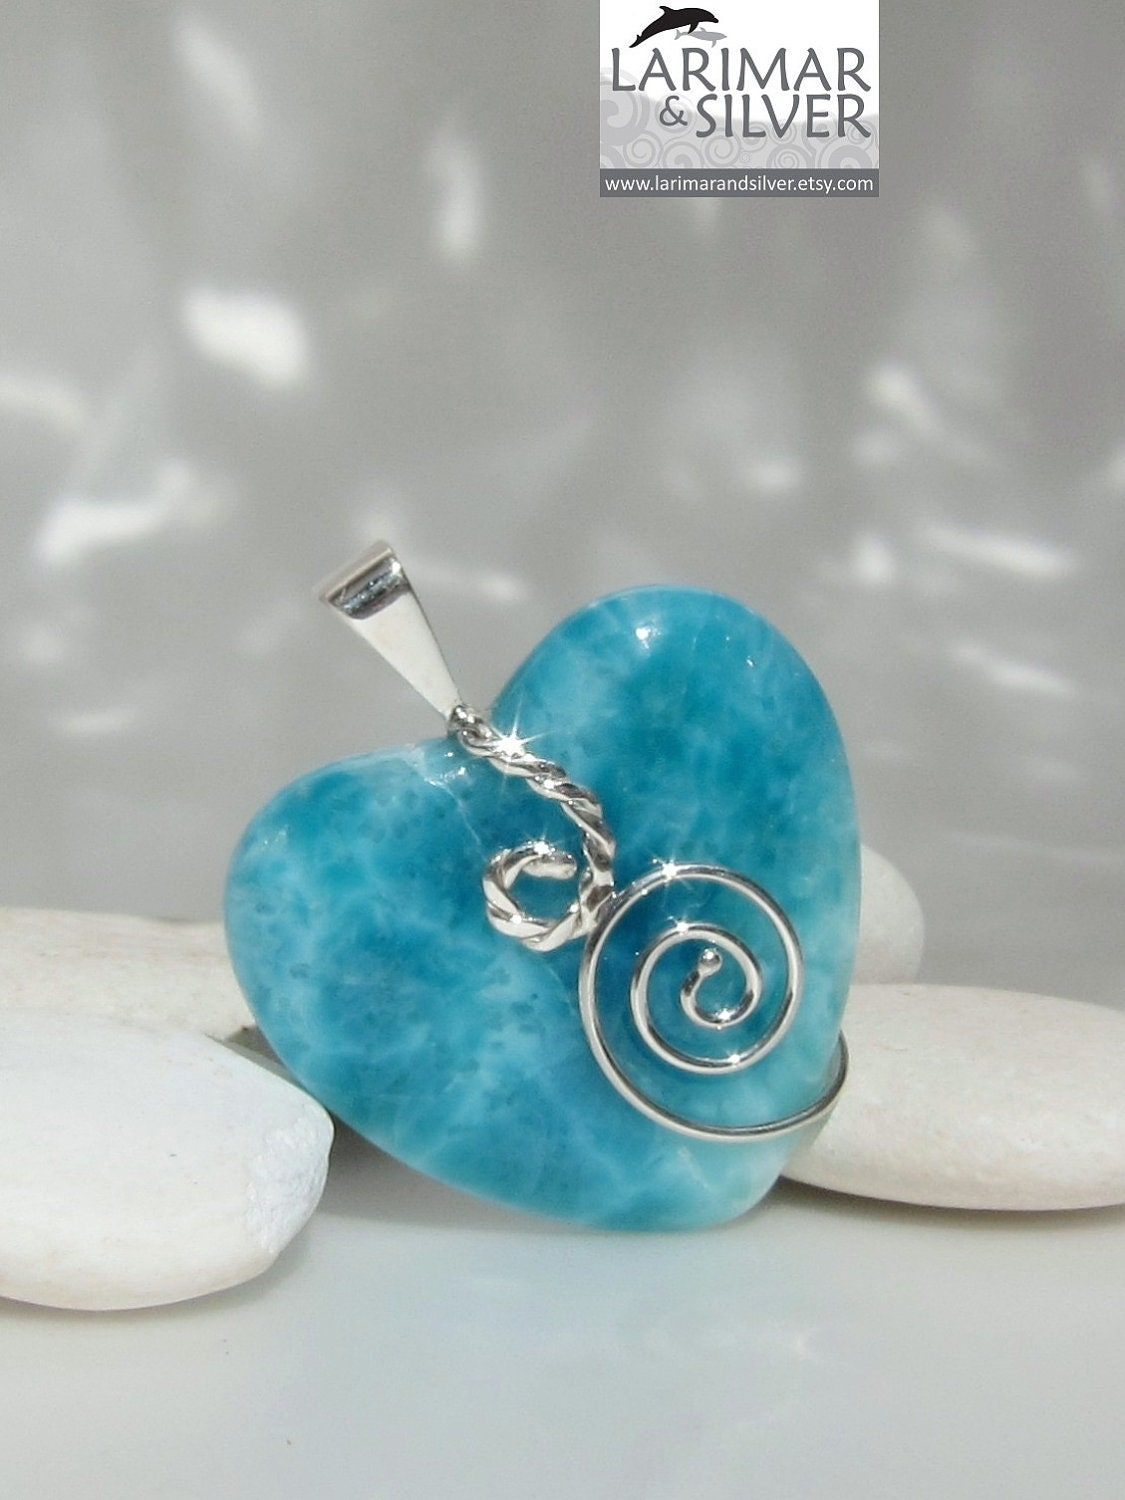 Larimar Heart Pendant Swirling Teal Beautiful Caribbean Sea